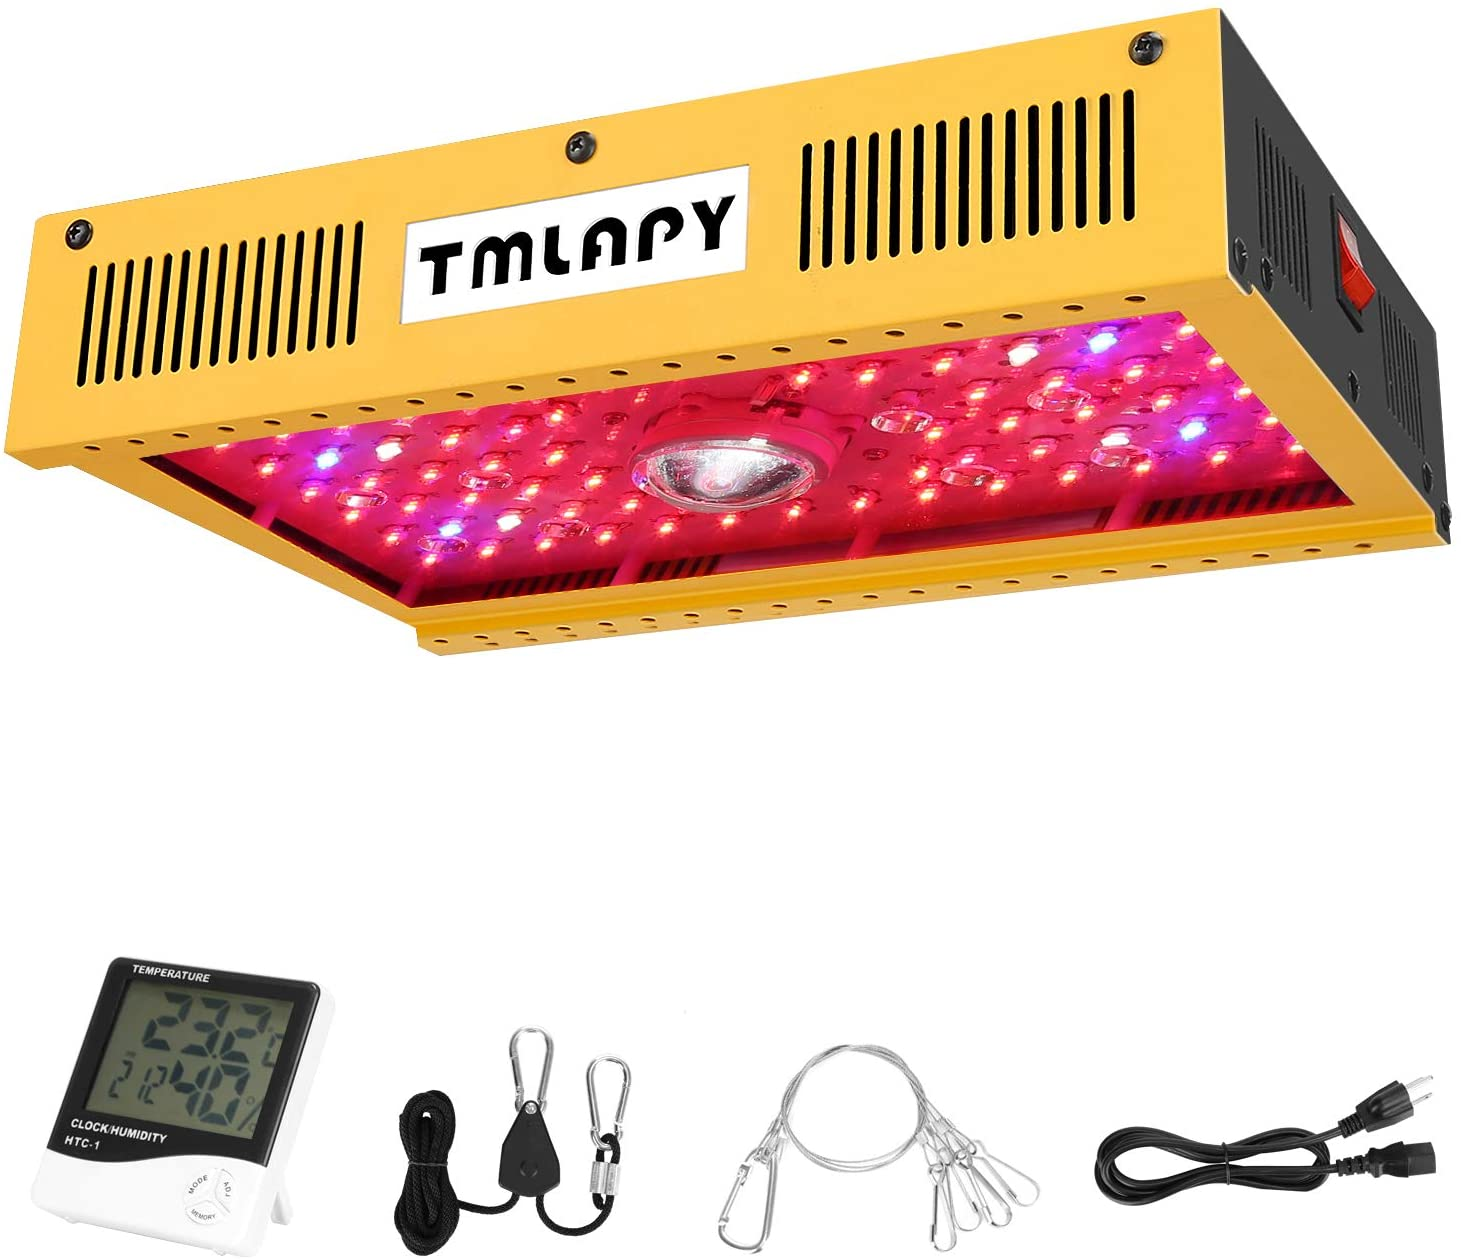 The Best 1000w Led Grow Lights Reviews: 2017 - 2021